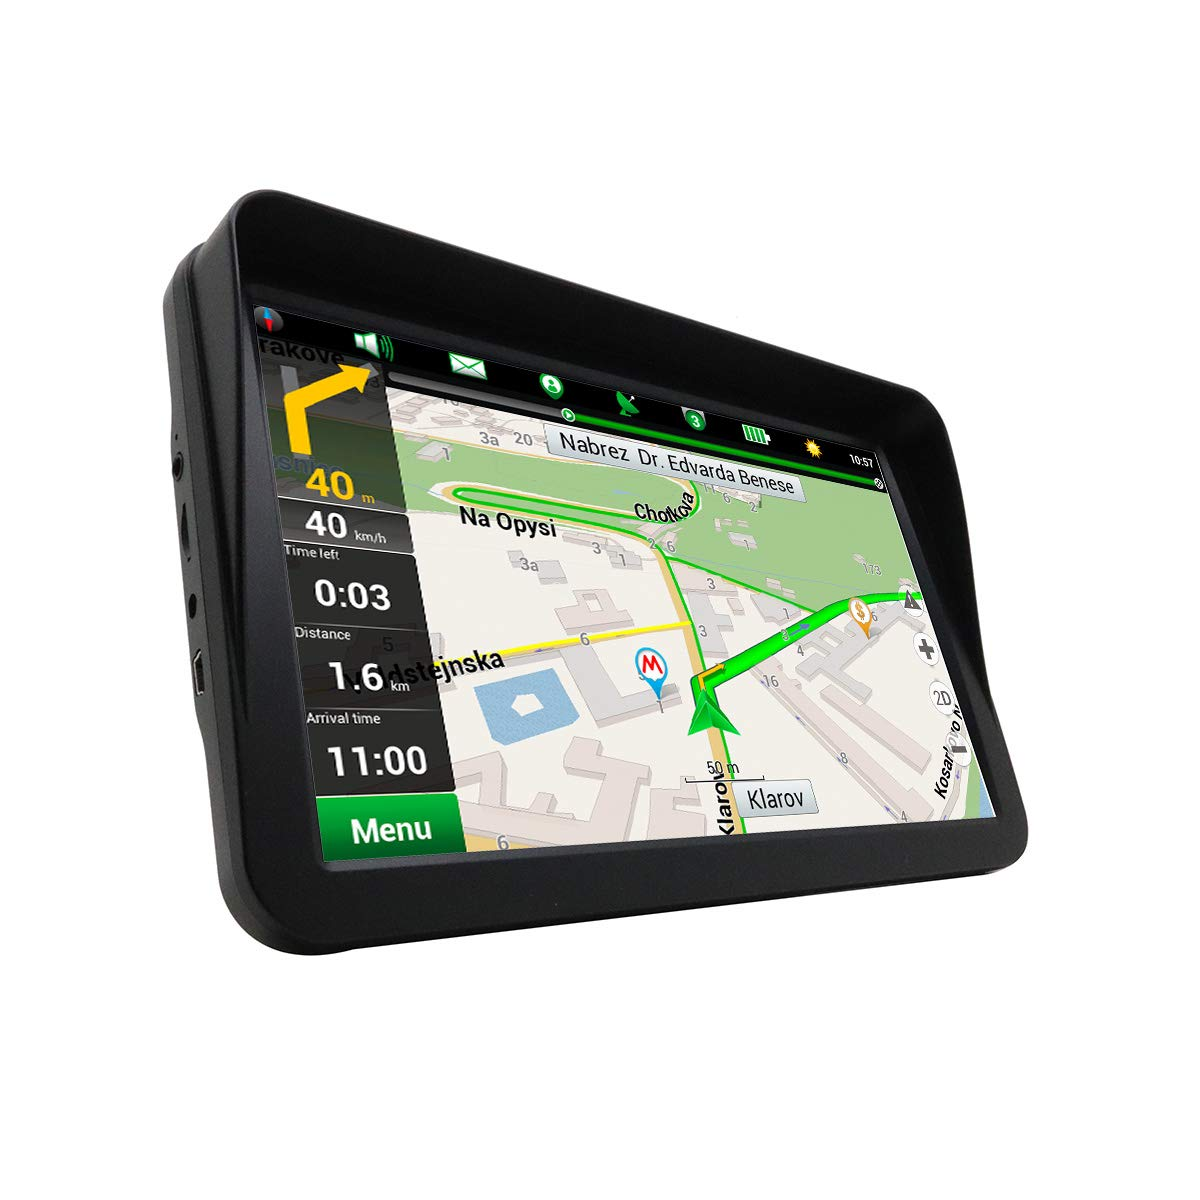 Car GPS Navigation 9 Inch with Sunshade 8GB-256MB Memory Portable Truck Motorhome Navigator Touch Screen Voice Reminder Vehicle Satellite Navigator (Wince 6.0) by karadarA